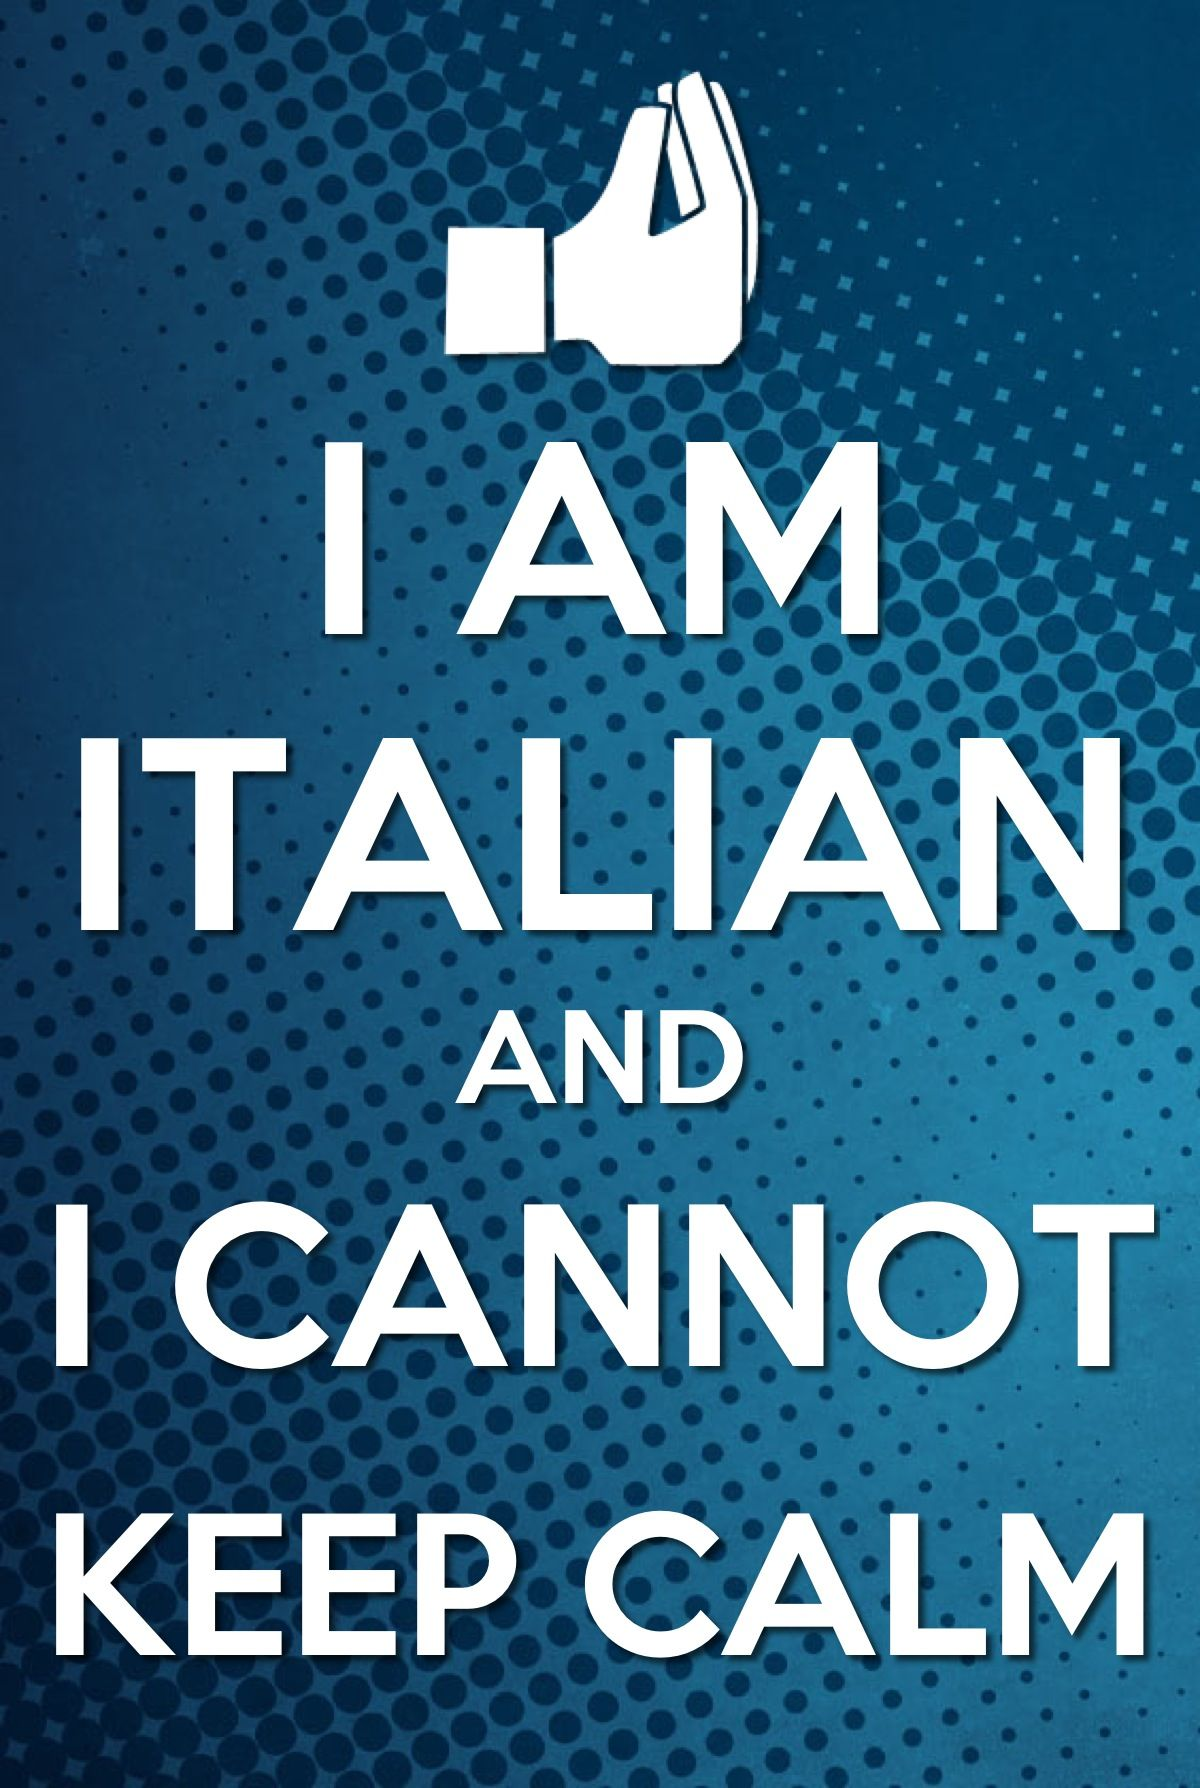 I'm not Italian  just want u to know